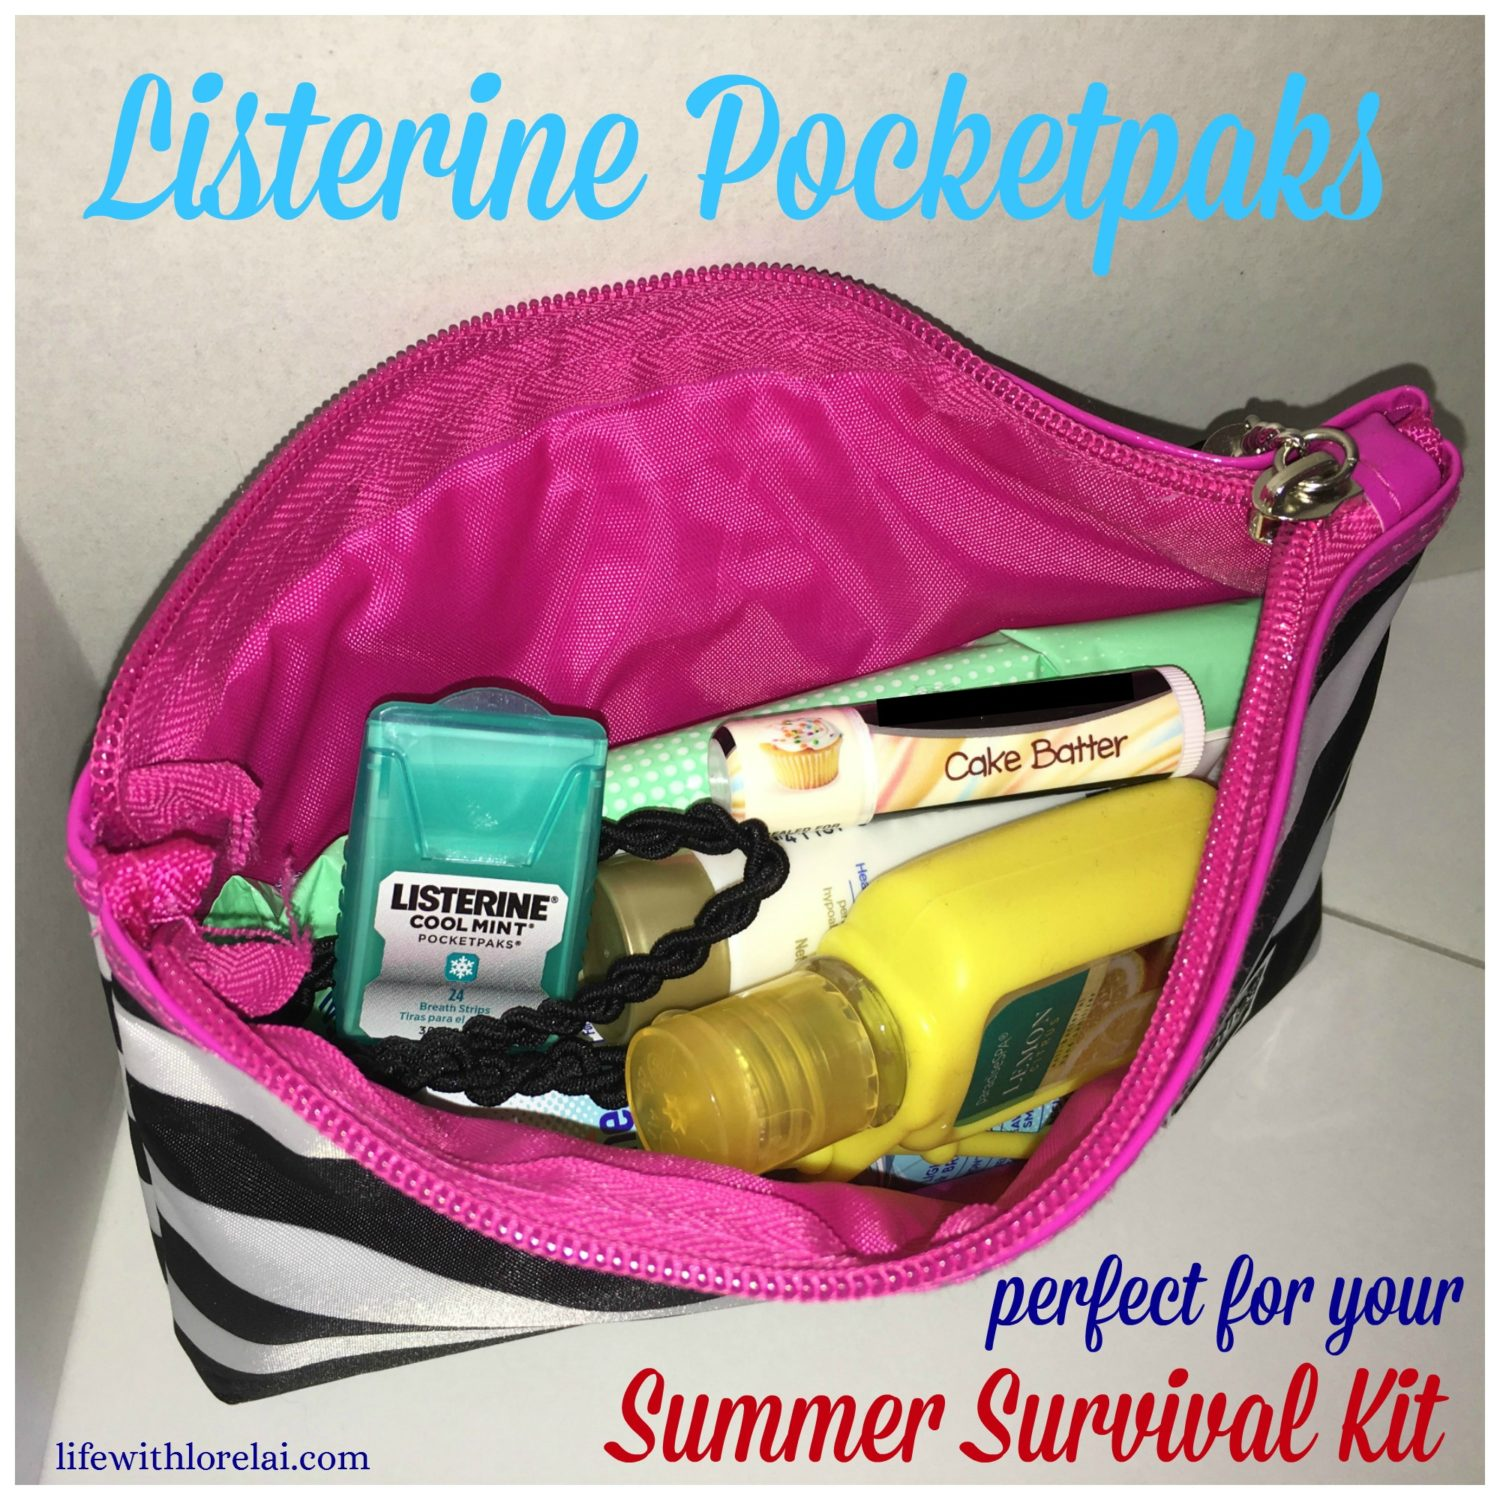 Listerine-Pocketpaks-perfect-summer-survival-kit